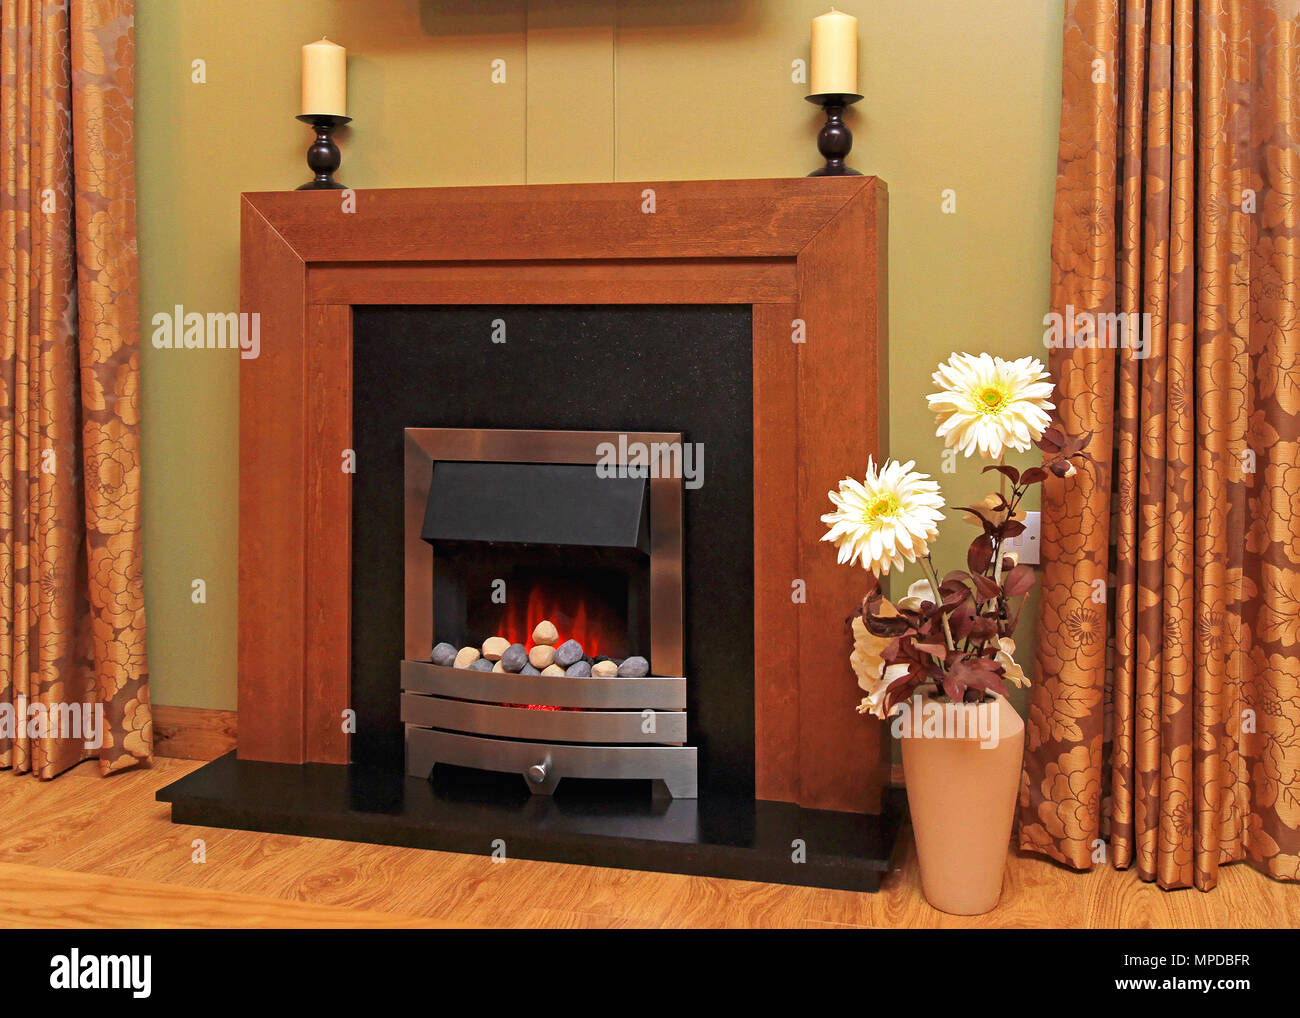 Fire Stones For Fireplace Artificial Fire In Electric Fireplace With Lava Stones Stock Photo